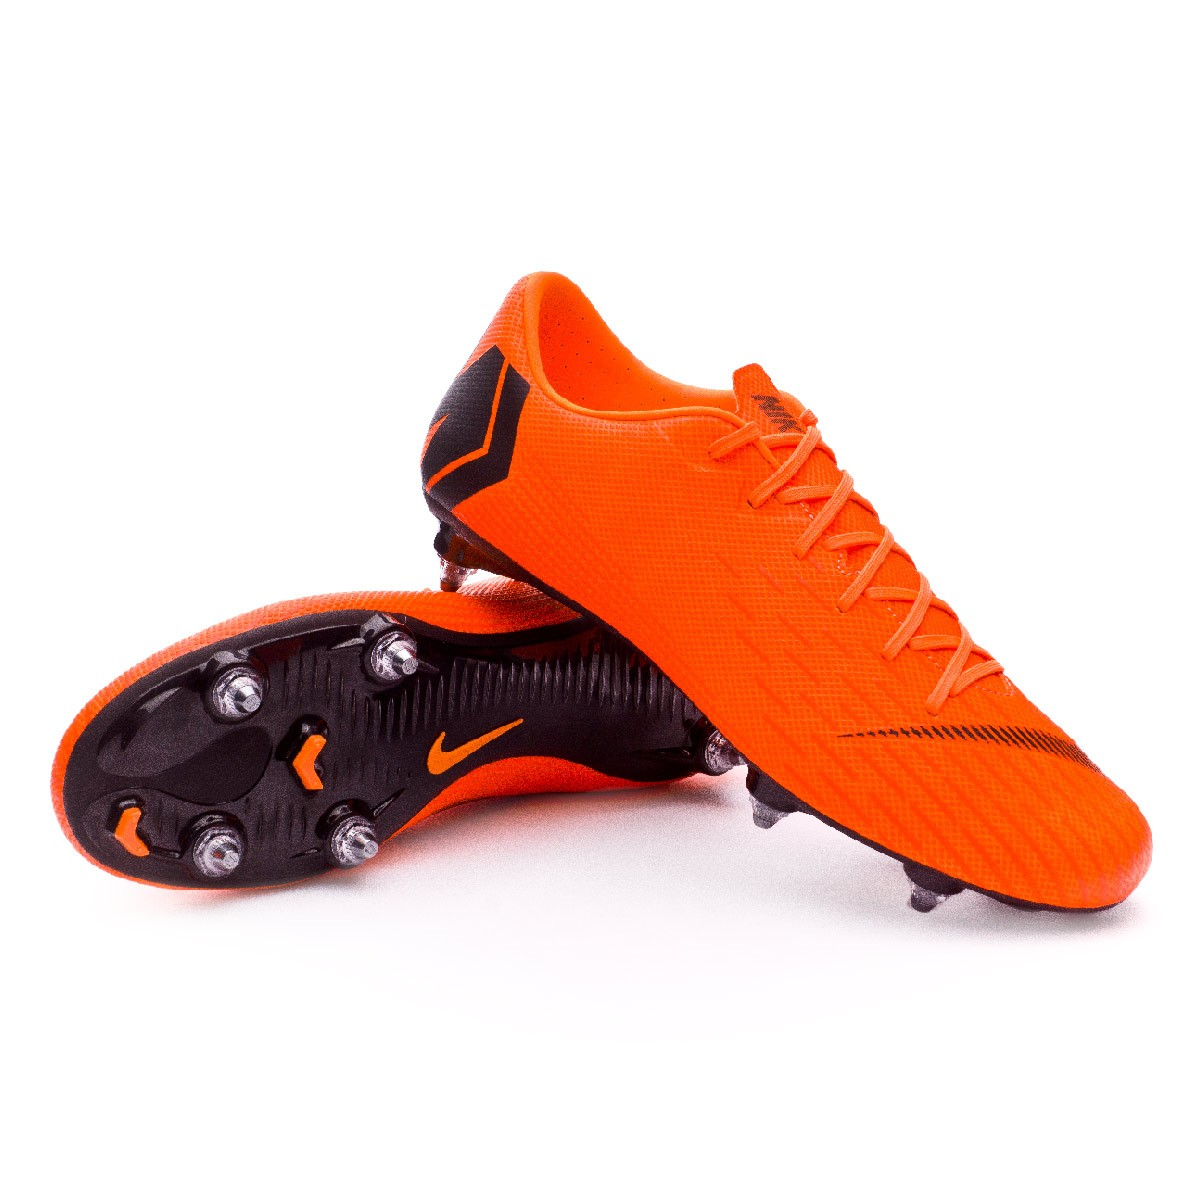 new product 2f484 8887b Nike Mercurial Vapor XII Academy SG-Pro Football Boots